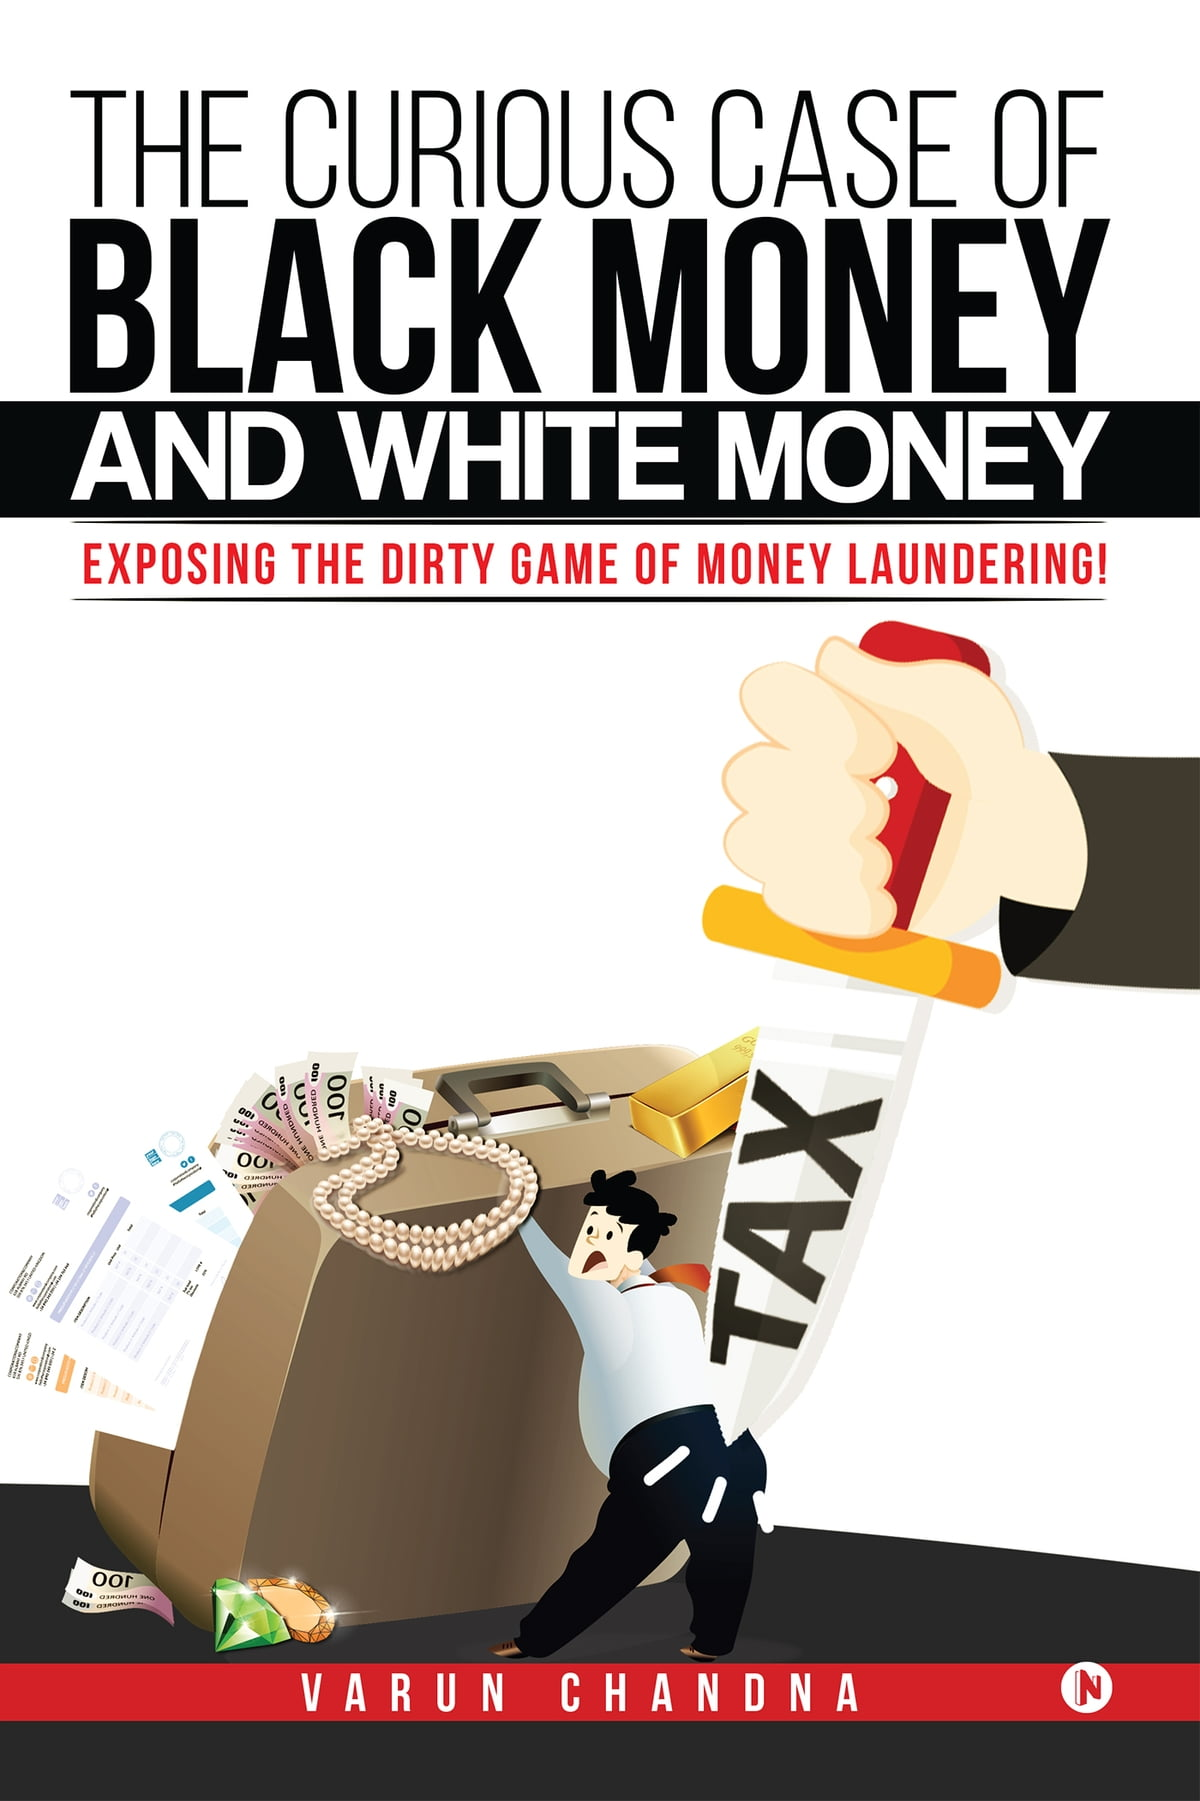 The Curious Case of Black Money and White Money eBook by Varun Chandna -  9781946822307 | Rakuten Kobo